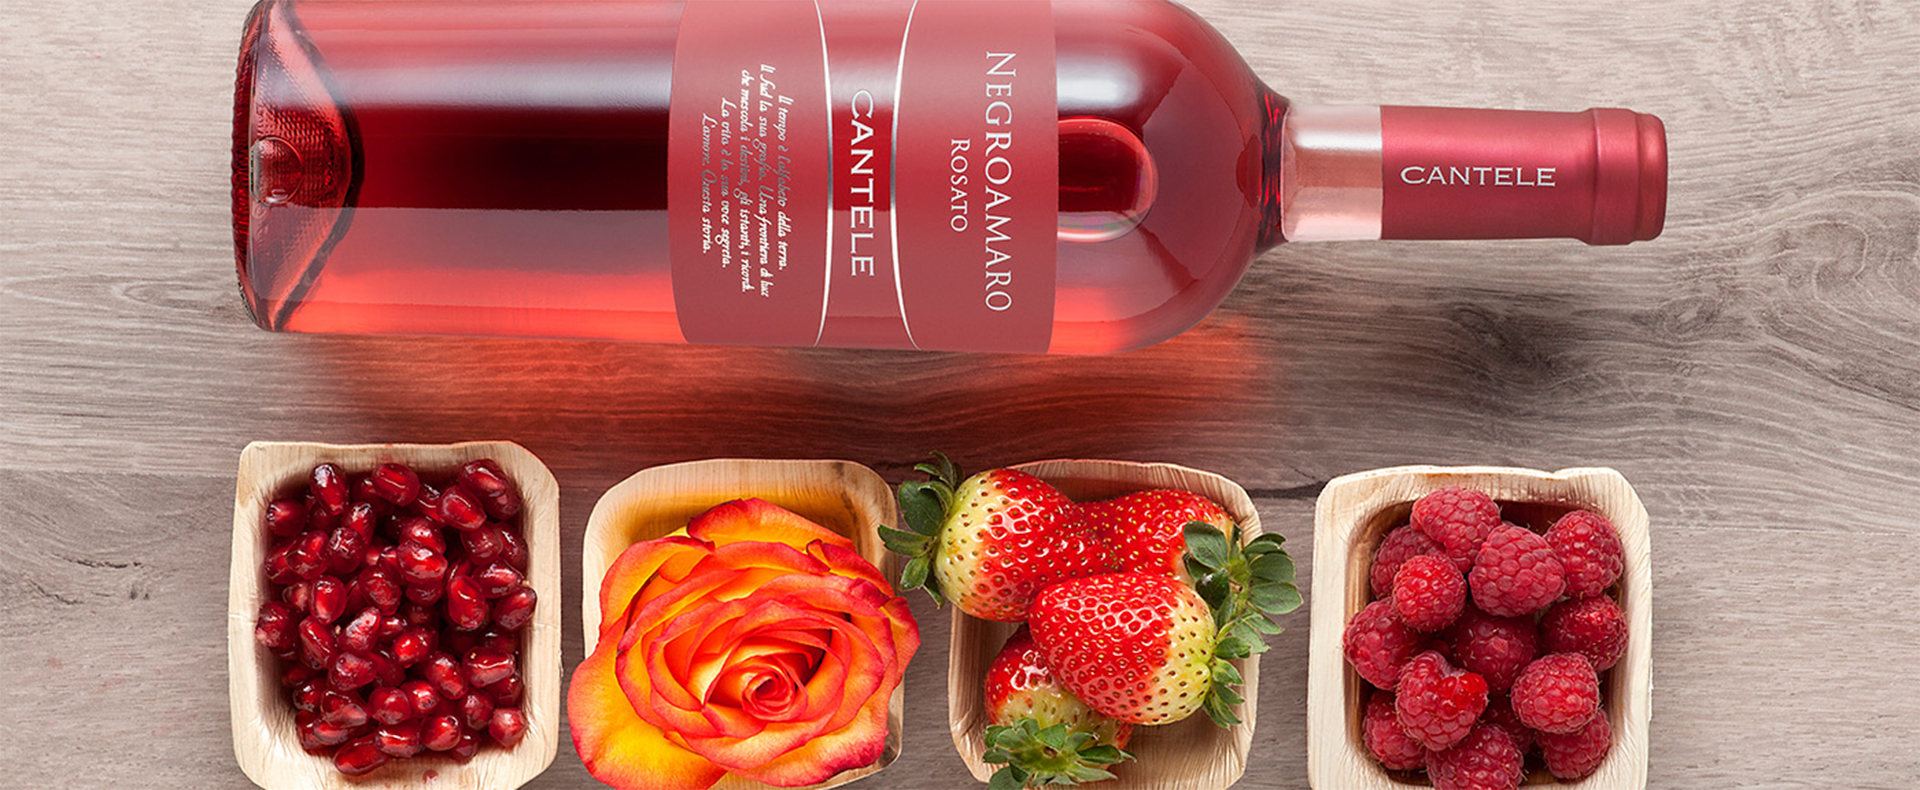 Wine Spectator features Cantele Rosato